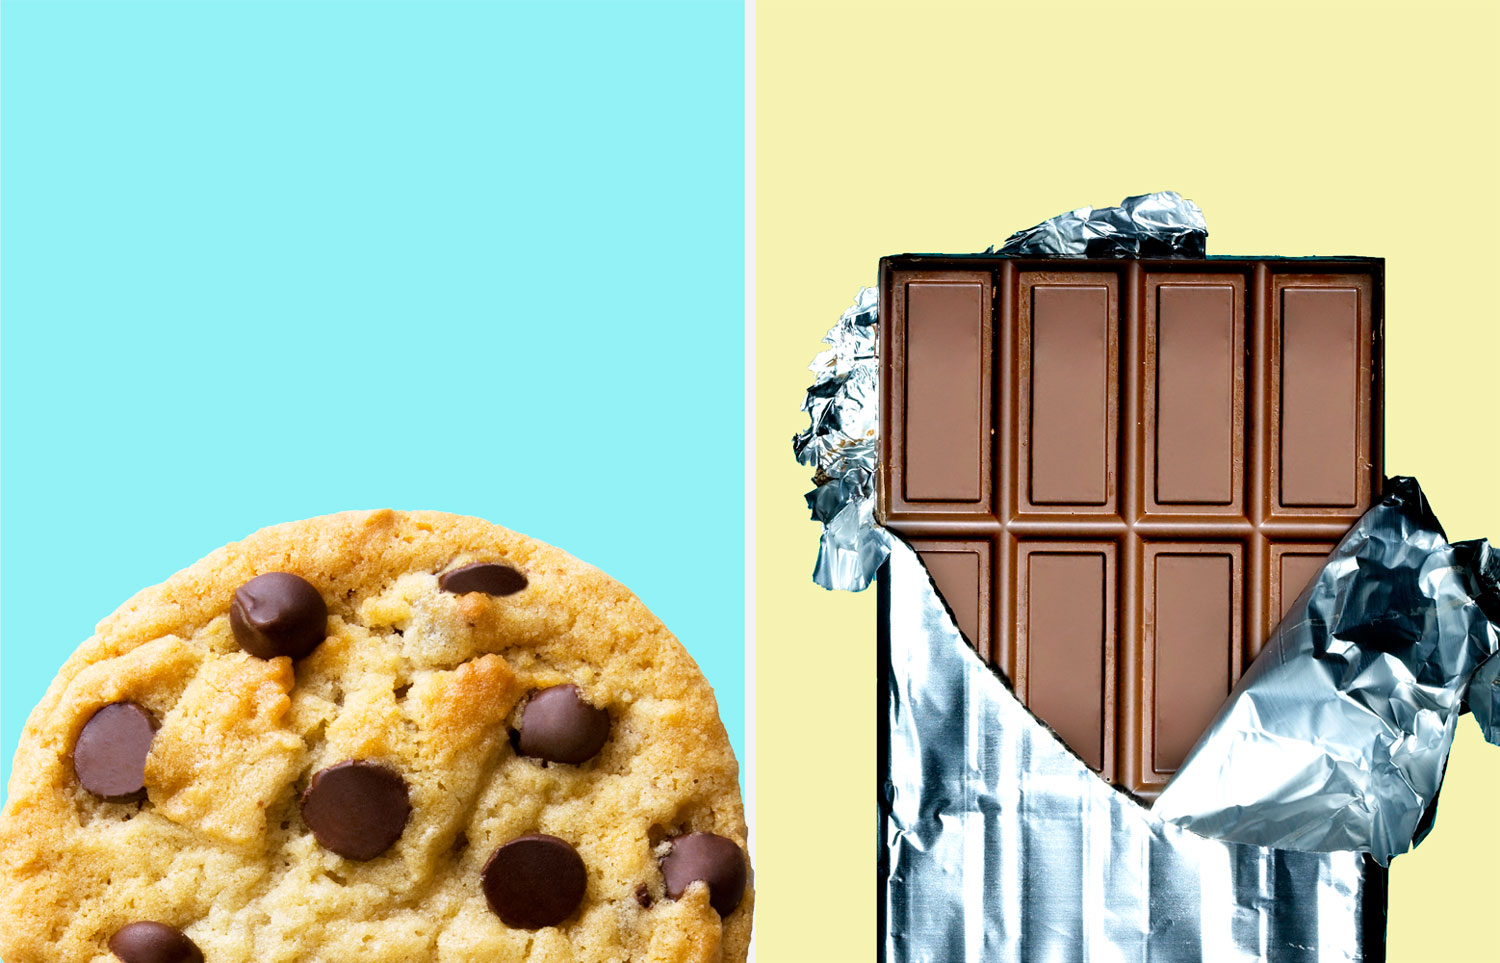 Which is better for you: A low fat cookie or dark chocolate?